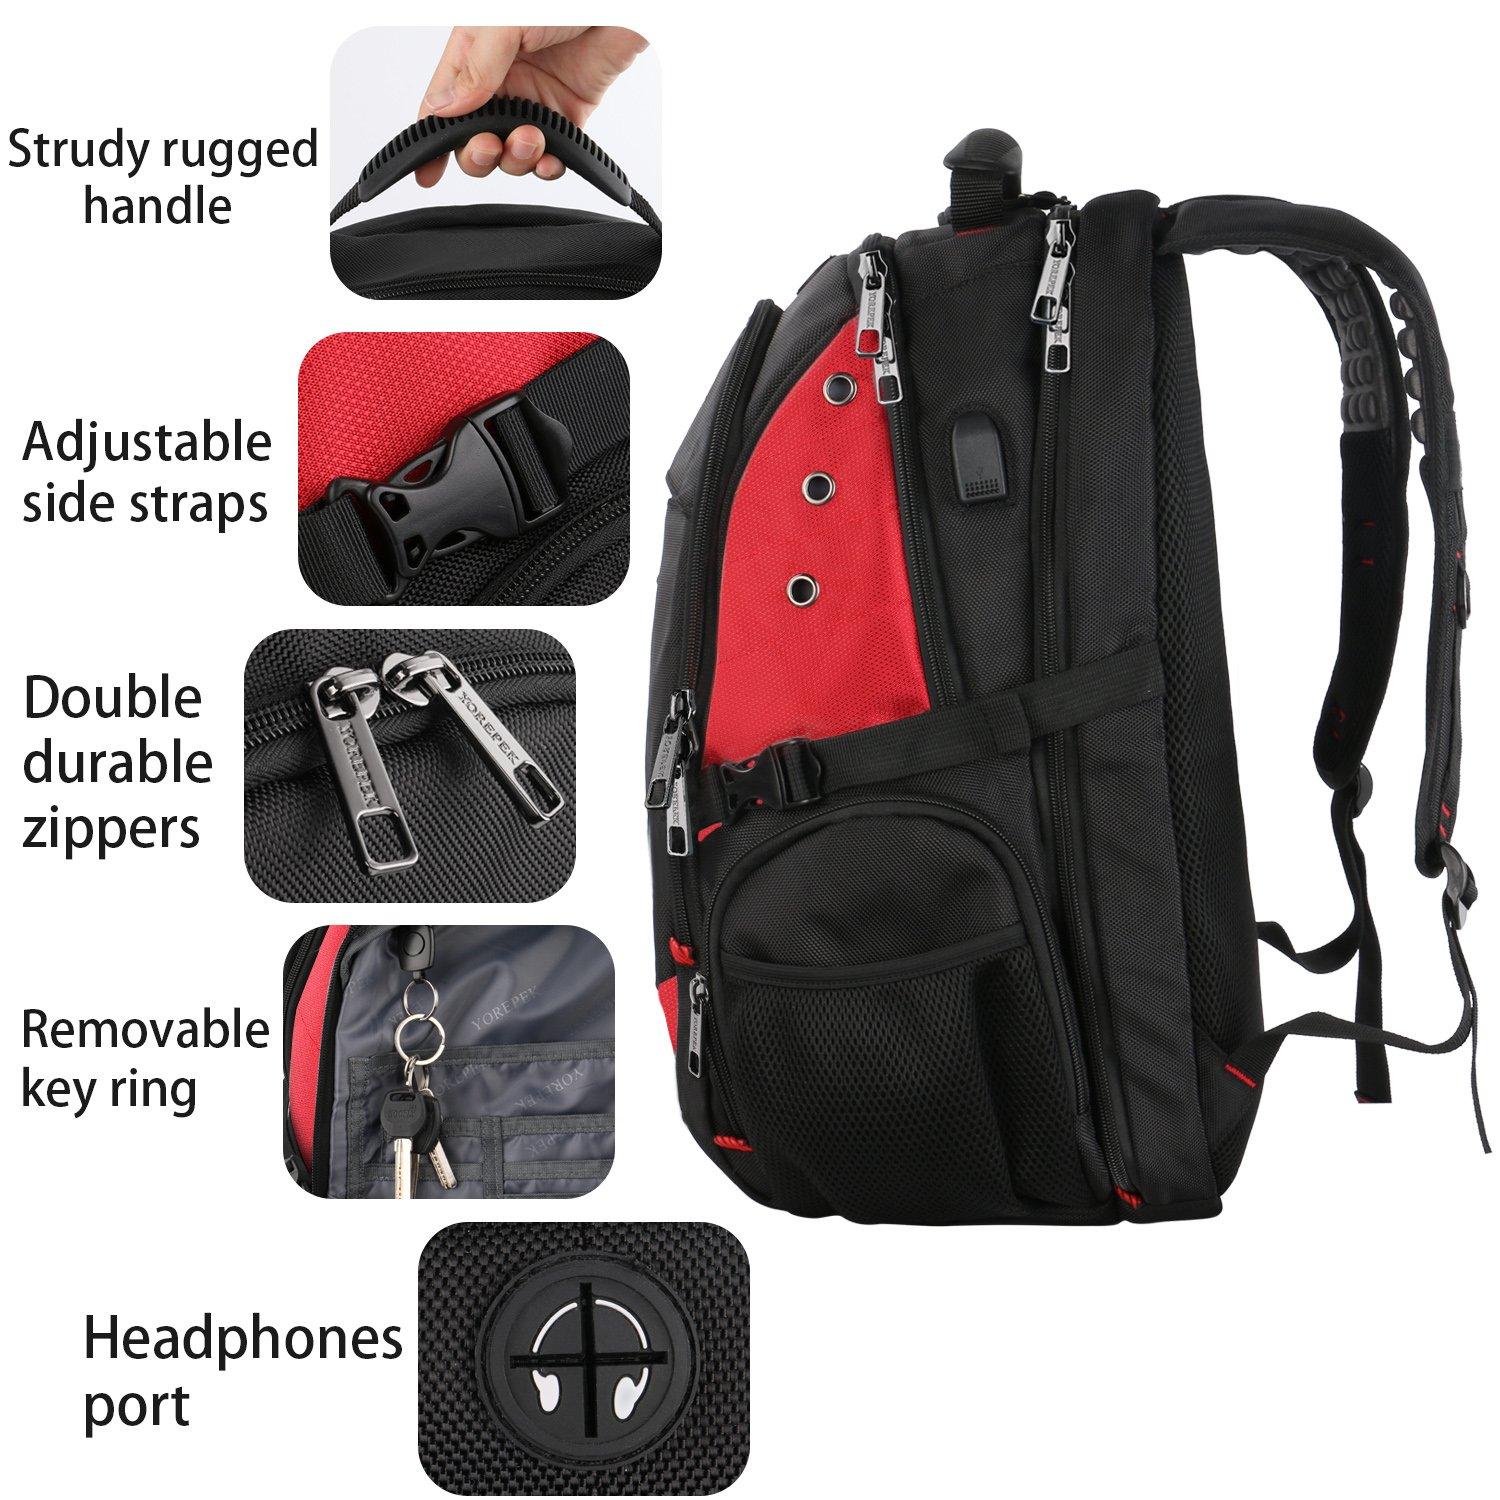 17 Inch Laptop Backpack,Extra Large Travel Backpacks with USB Charging Port for Business Women Mens, Large Capacity Bookbag for College School Student,TSA Friendly Water Resistant Computer Bagpack Red by YOREPEK (Image #6)